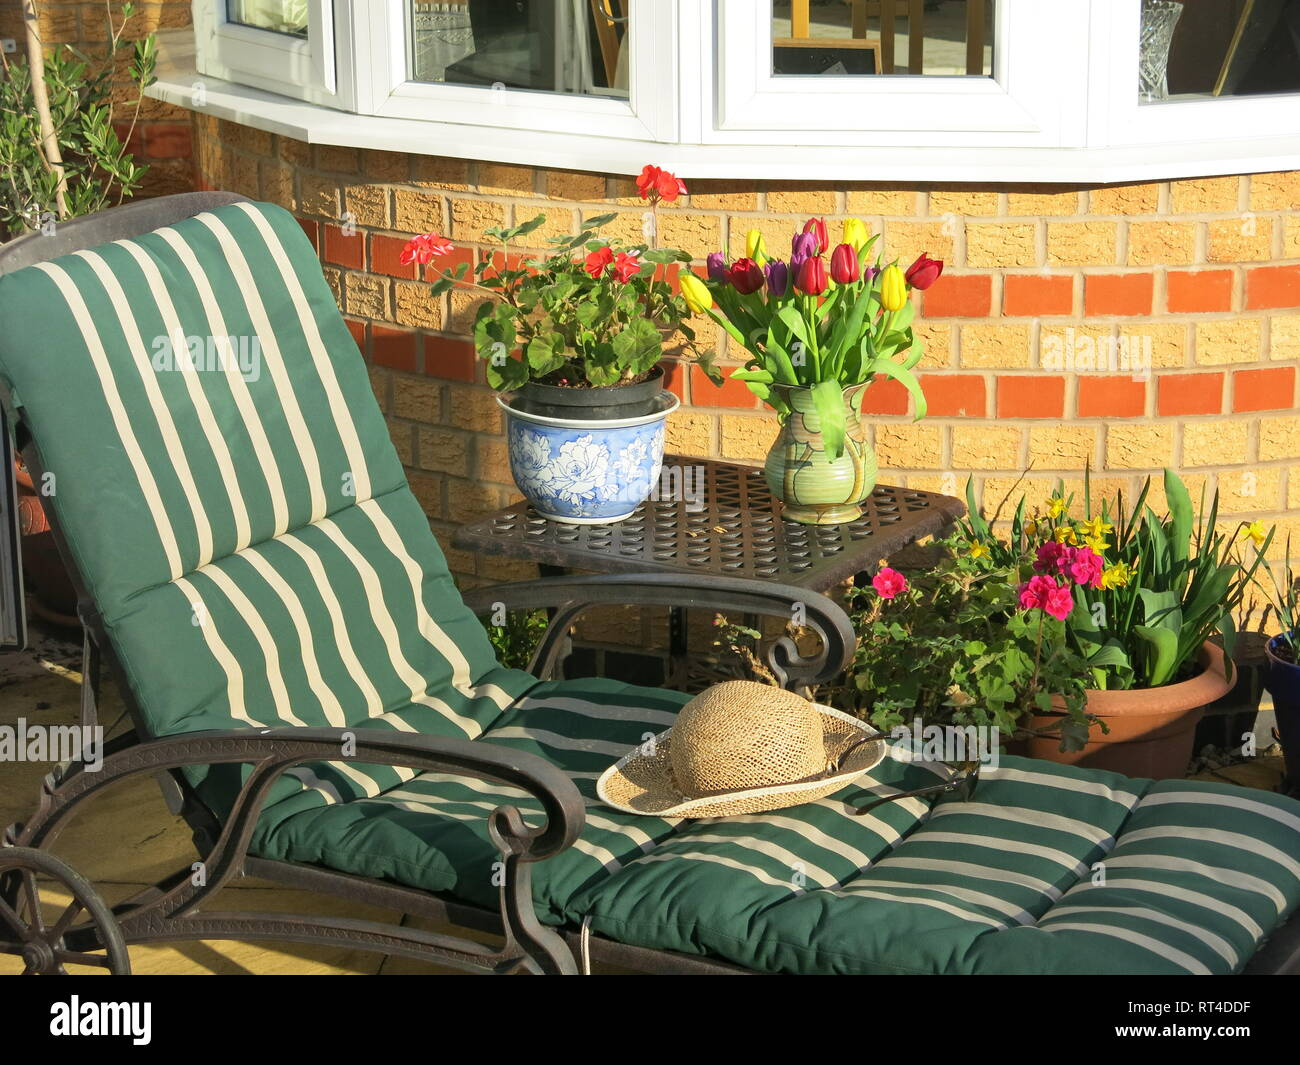 Record-breaking warm weather in February 2019 brings the opportunity to sunbathe in an English back garden. - Stock Image